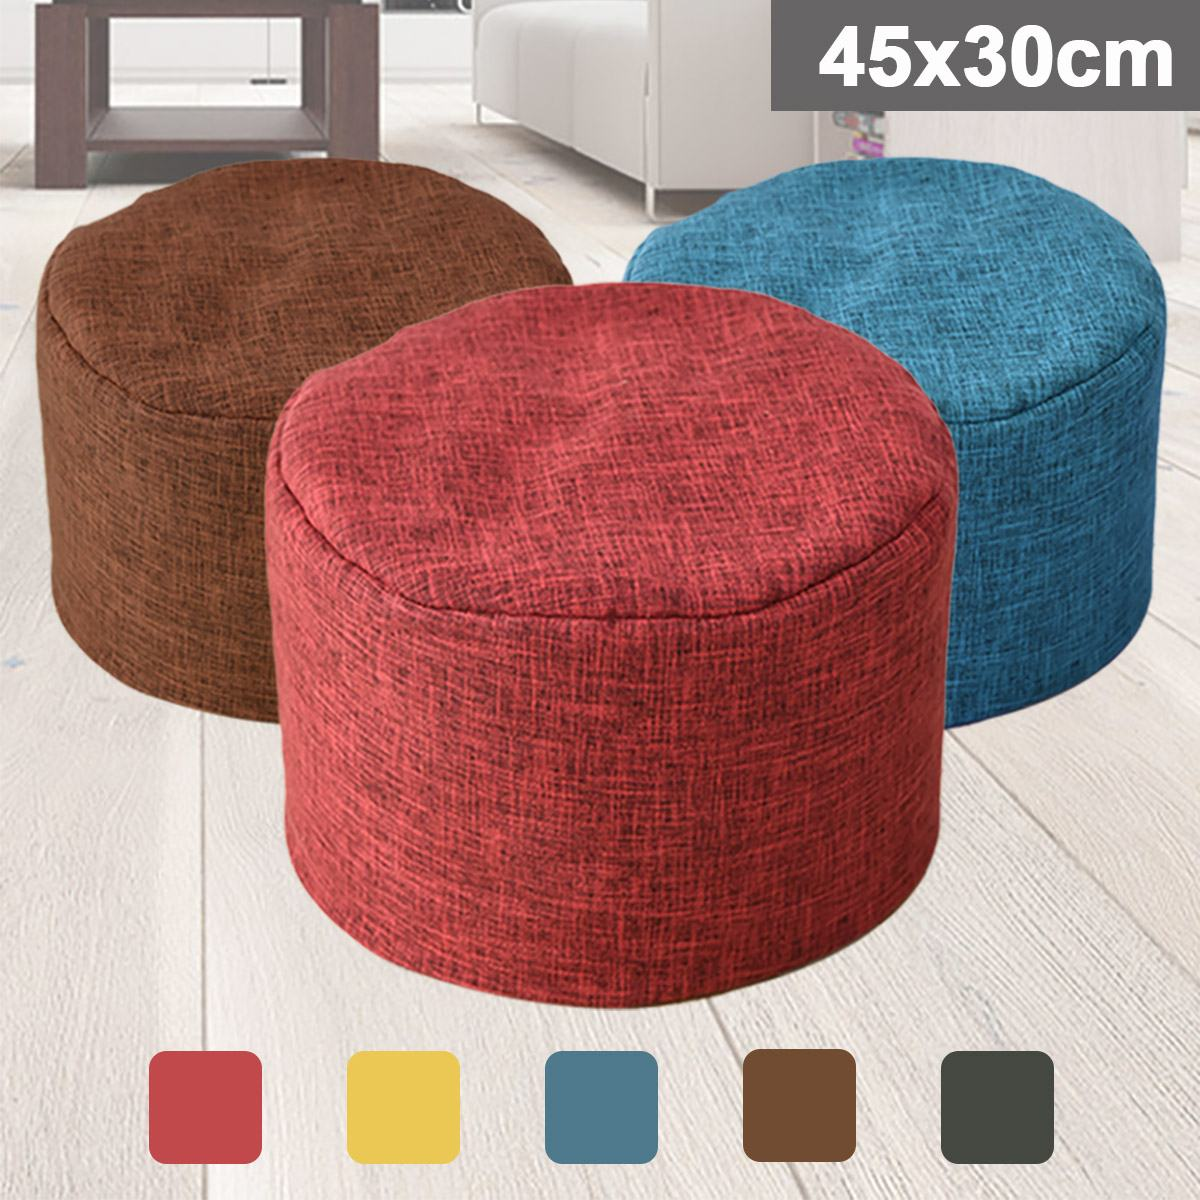 lazy sofa Waterproof Stuffed Animal Storage Toy Bean Bag Solid Color Oxford Chair Cover Large Beanbag(filling is not included)lazy sofa Waterproof Stuffed Animal Storage Toy Bean Bag Solid Color Oxford Chair Cover Large Beanbag(filling is not included)